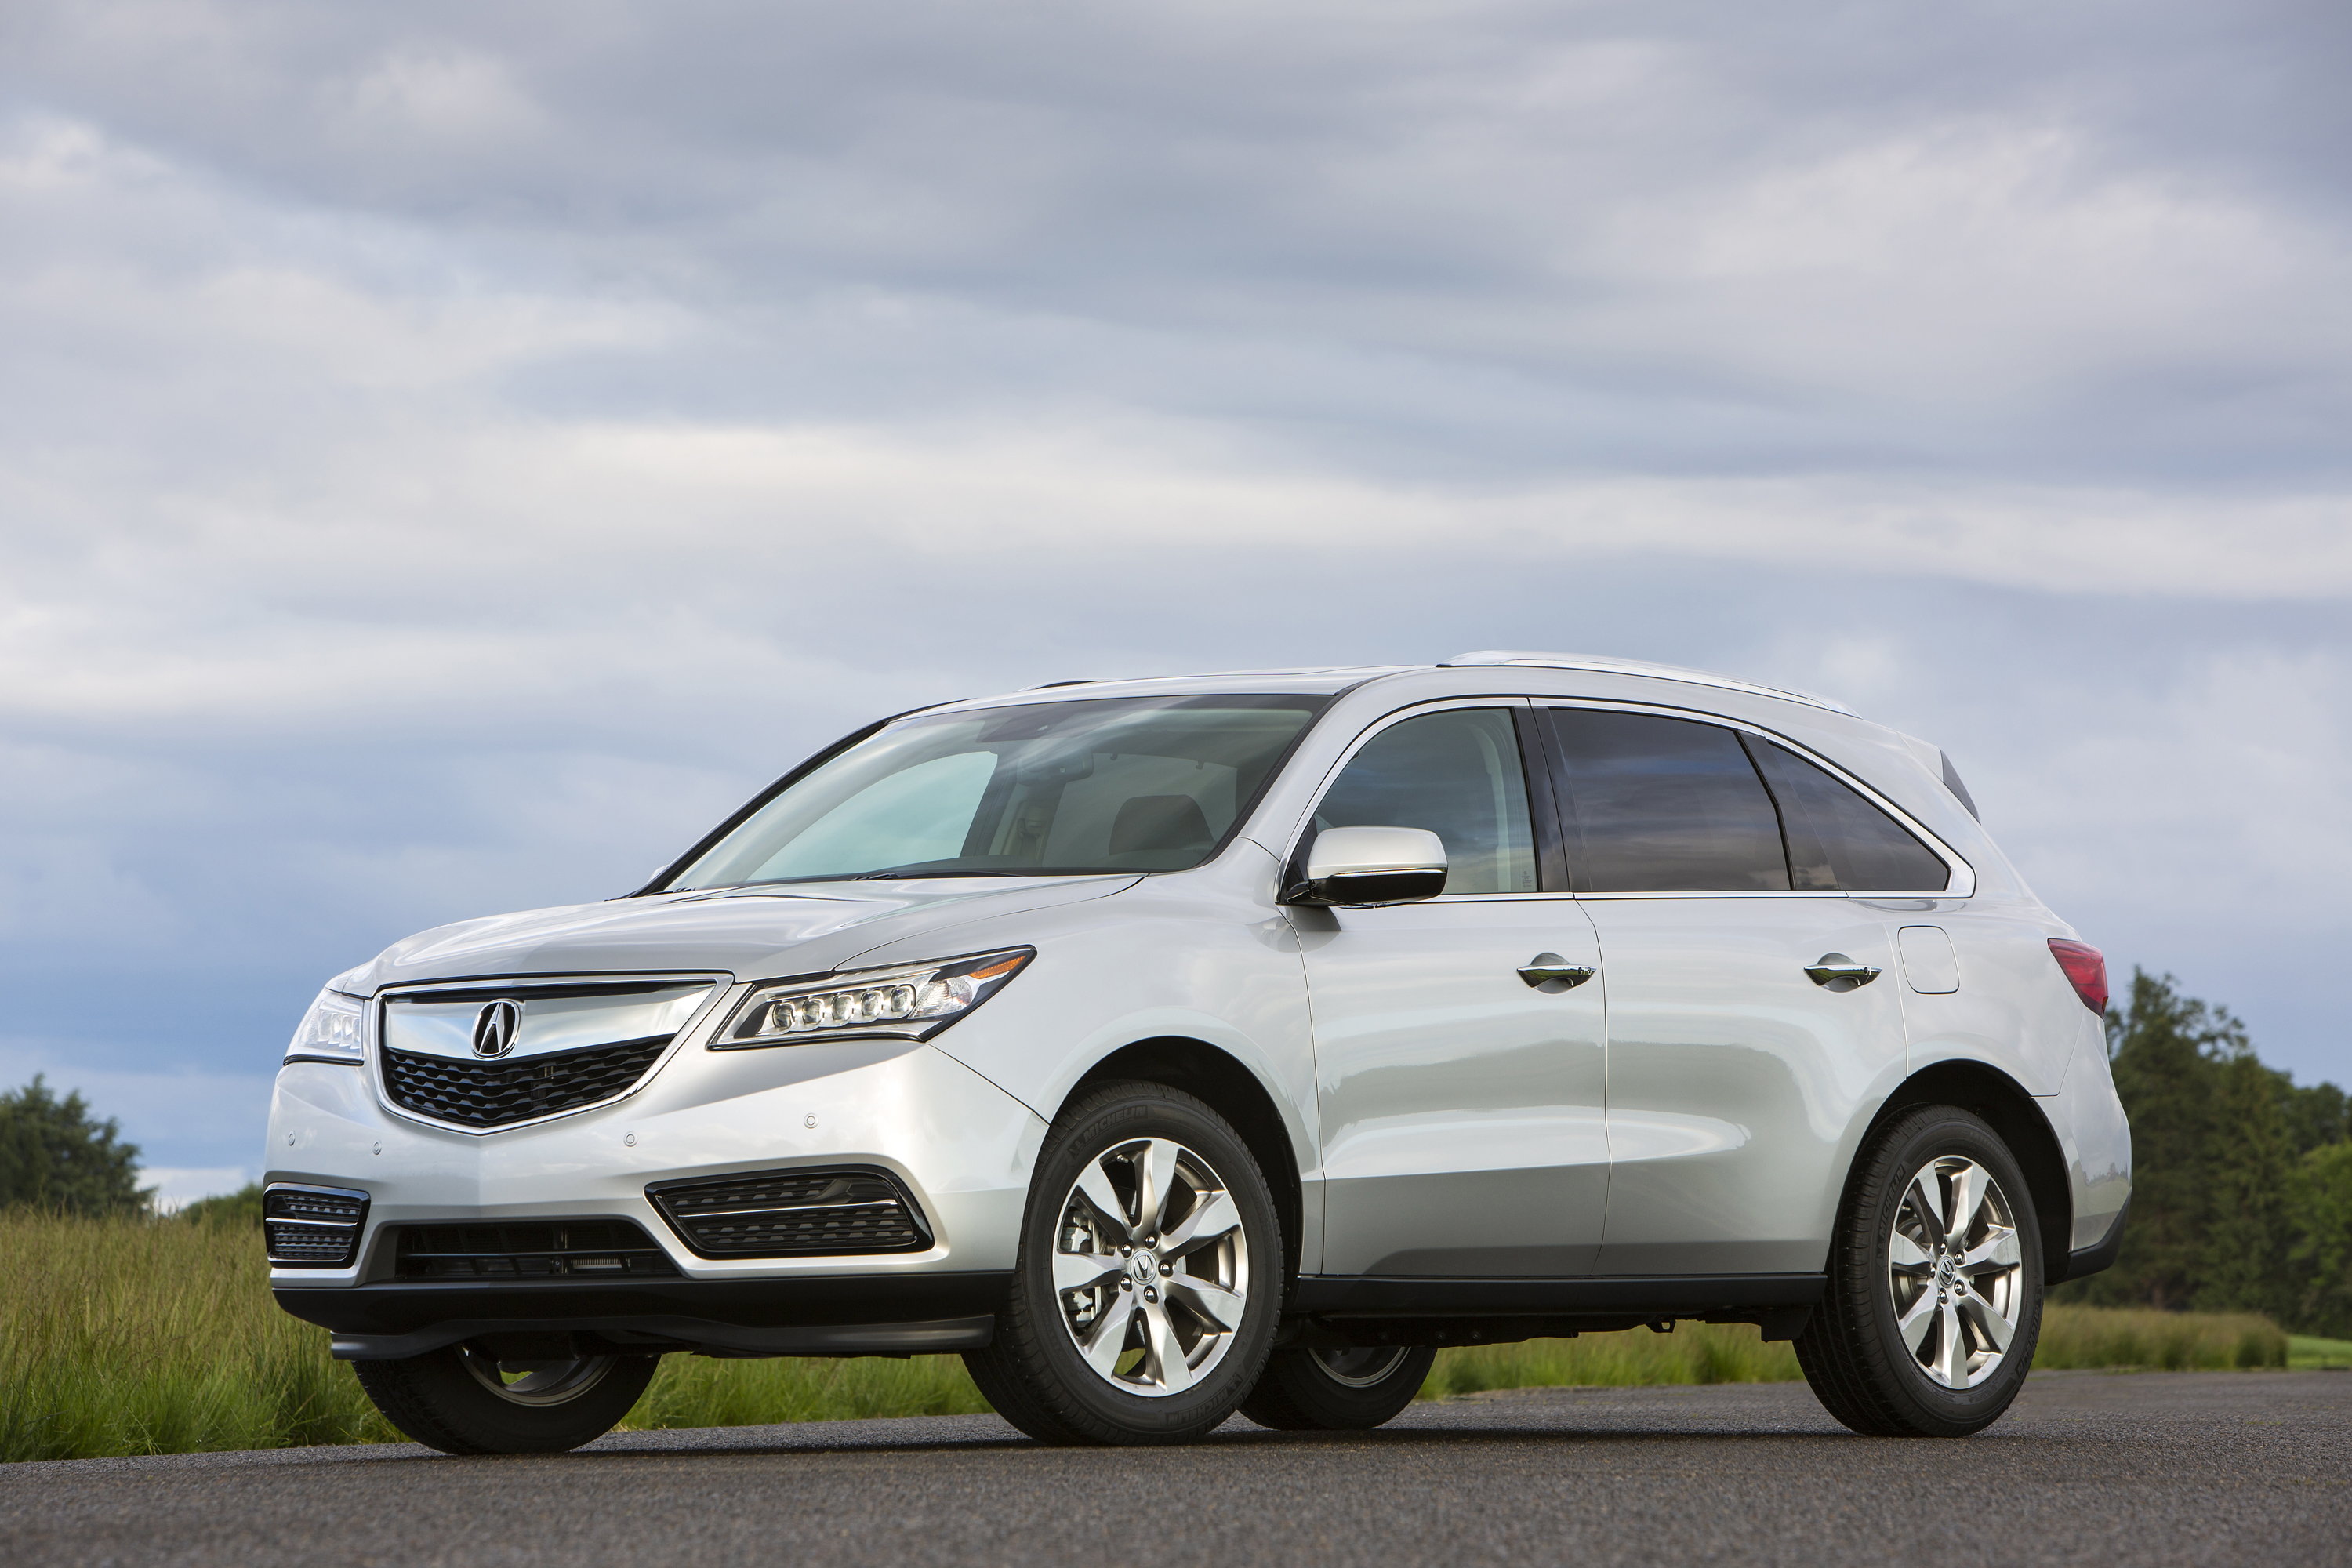 Honda Recalls Some Acura MDX Vehicles For Faulty Compressor - Acura client relations